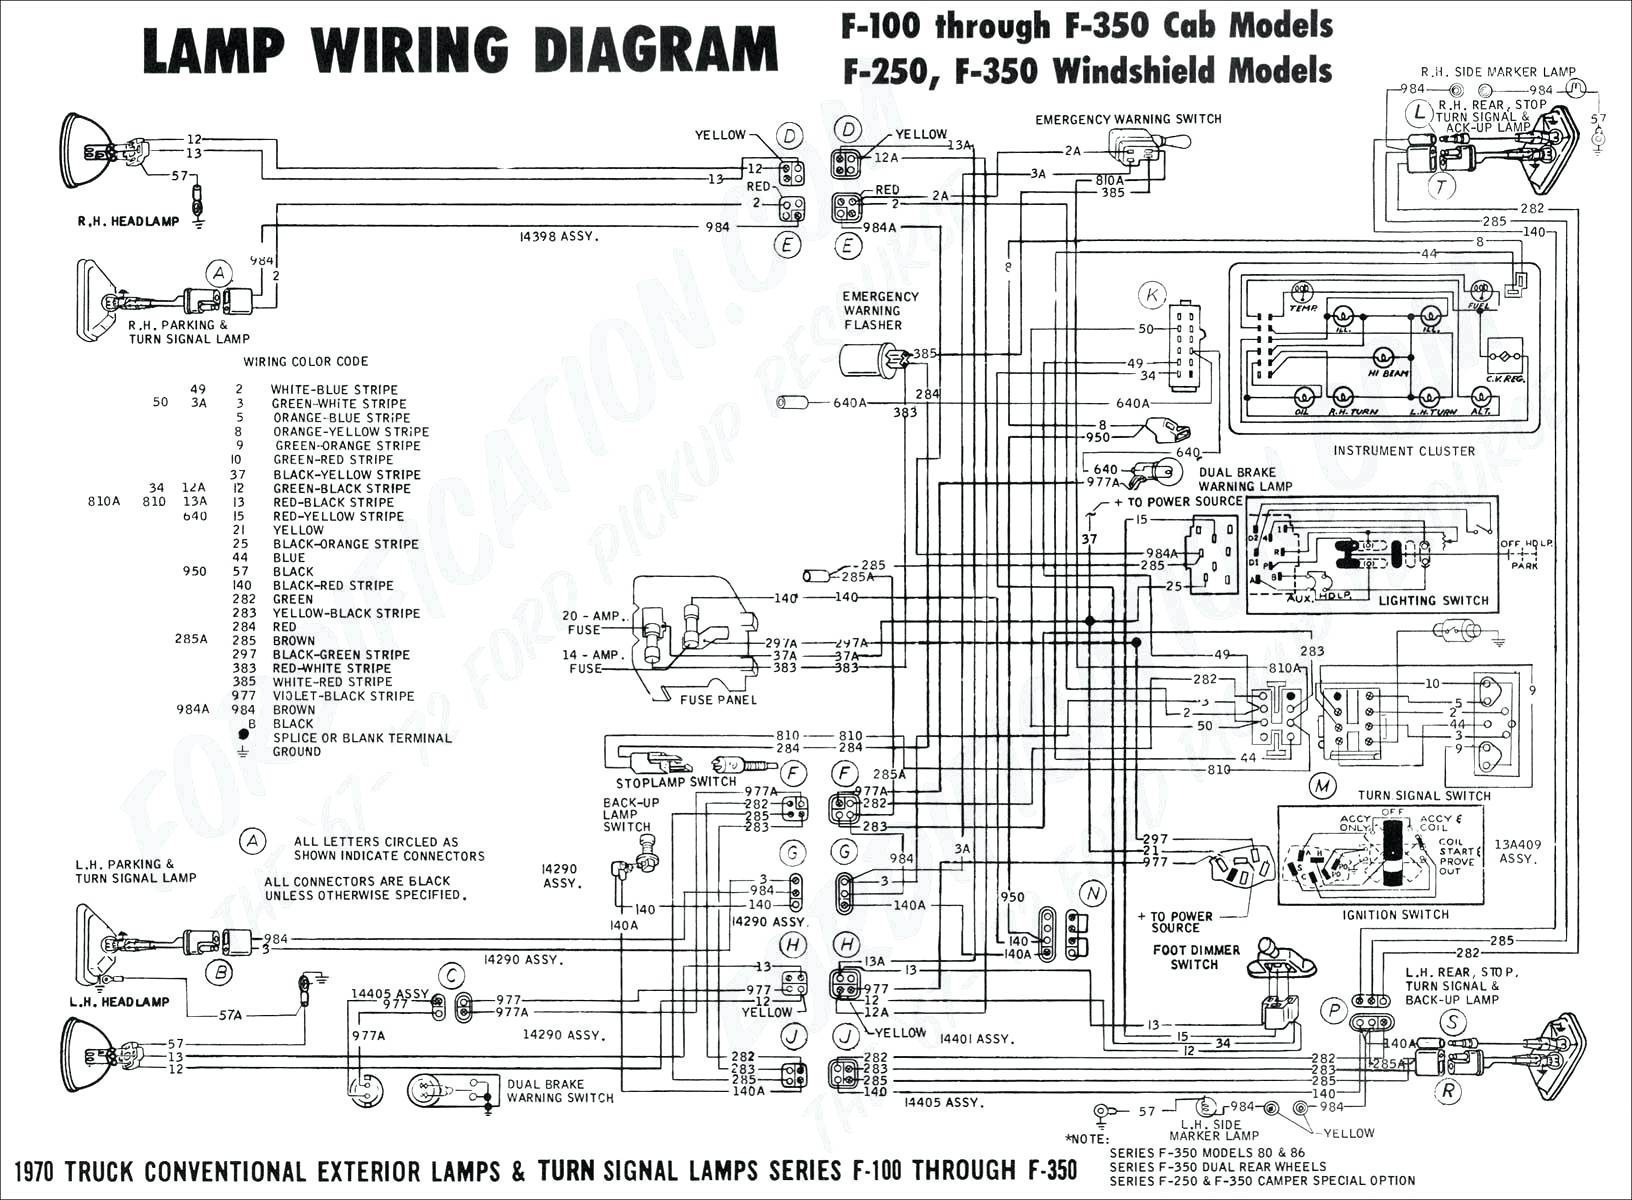 Samurai Fuse Box Wire Diagram Bo 2633] 1986 Chevy Truck Wiring Diagram Furthermore Dodge